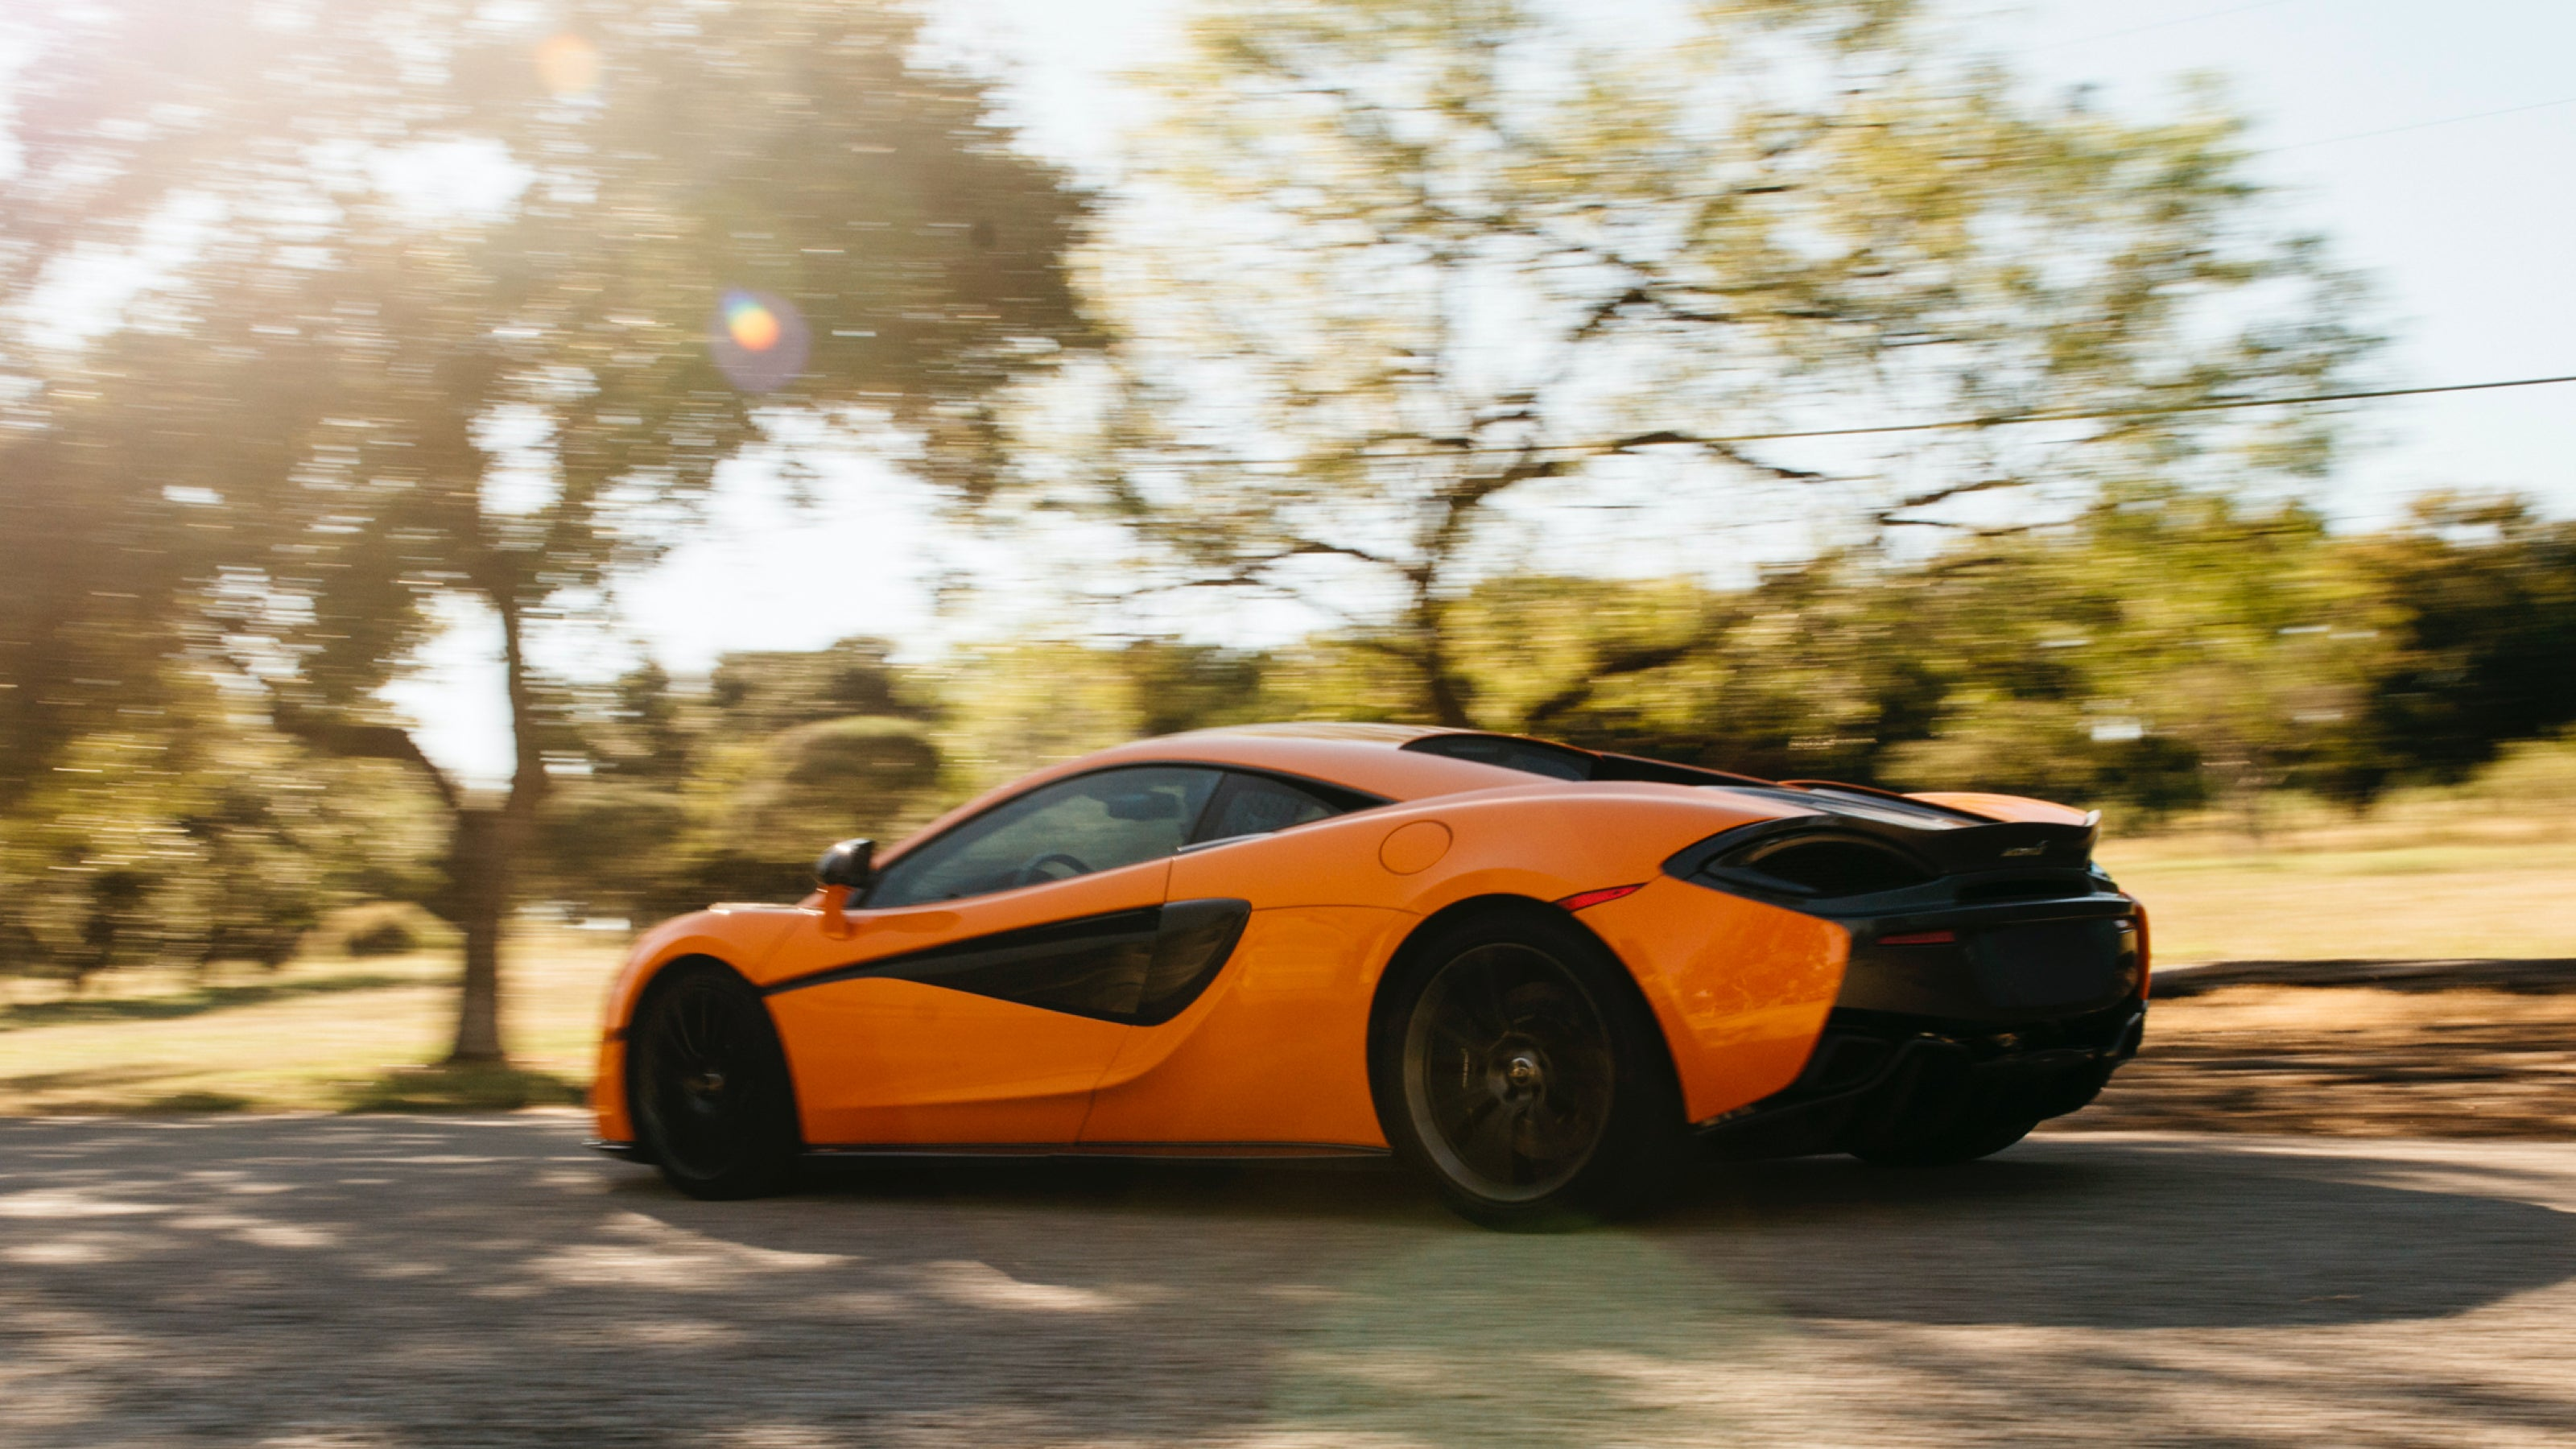 Photo credit Kevin McCauley/McLaren & Everything Is Better On The McLaren 570S Even The Billionaire Doors pezcame.com